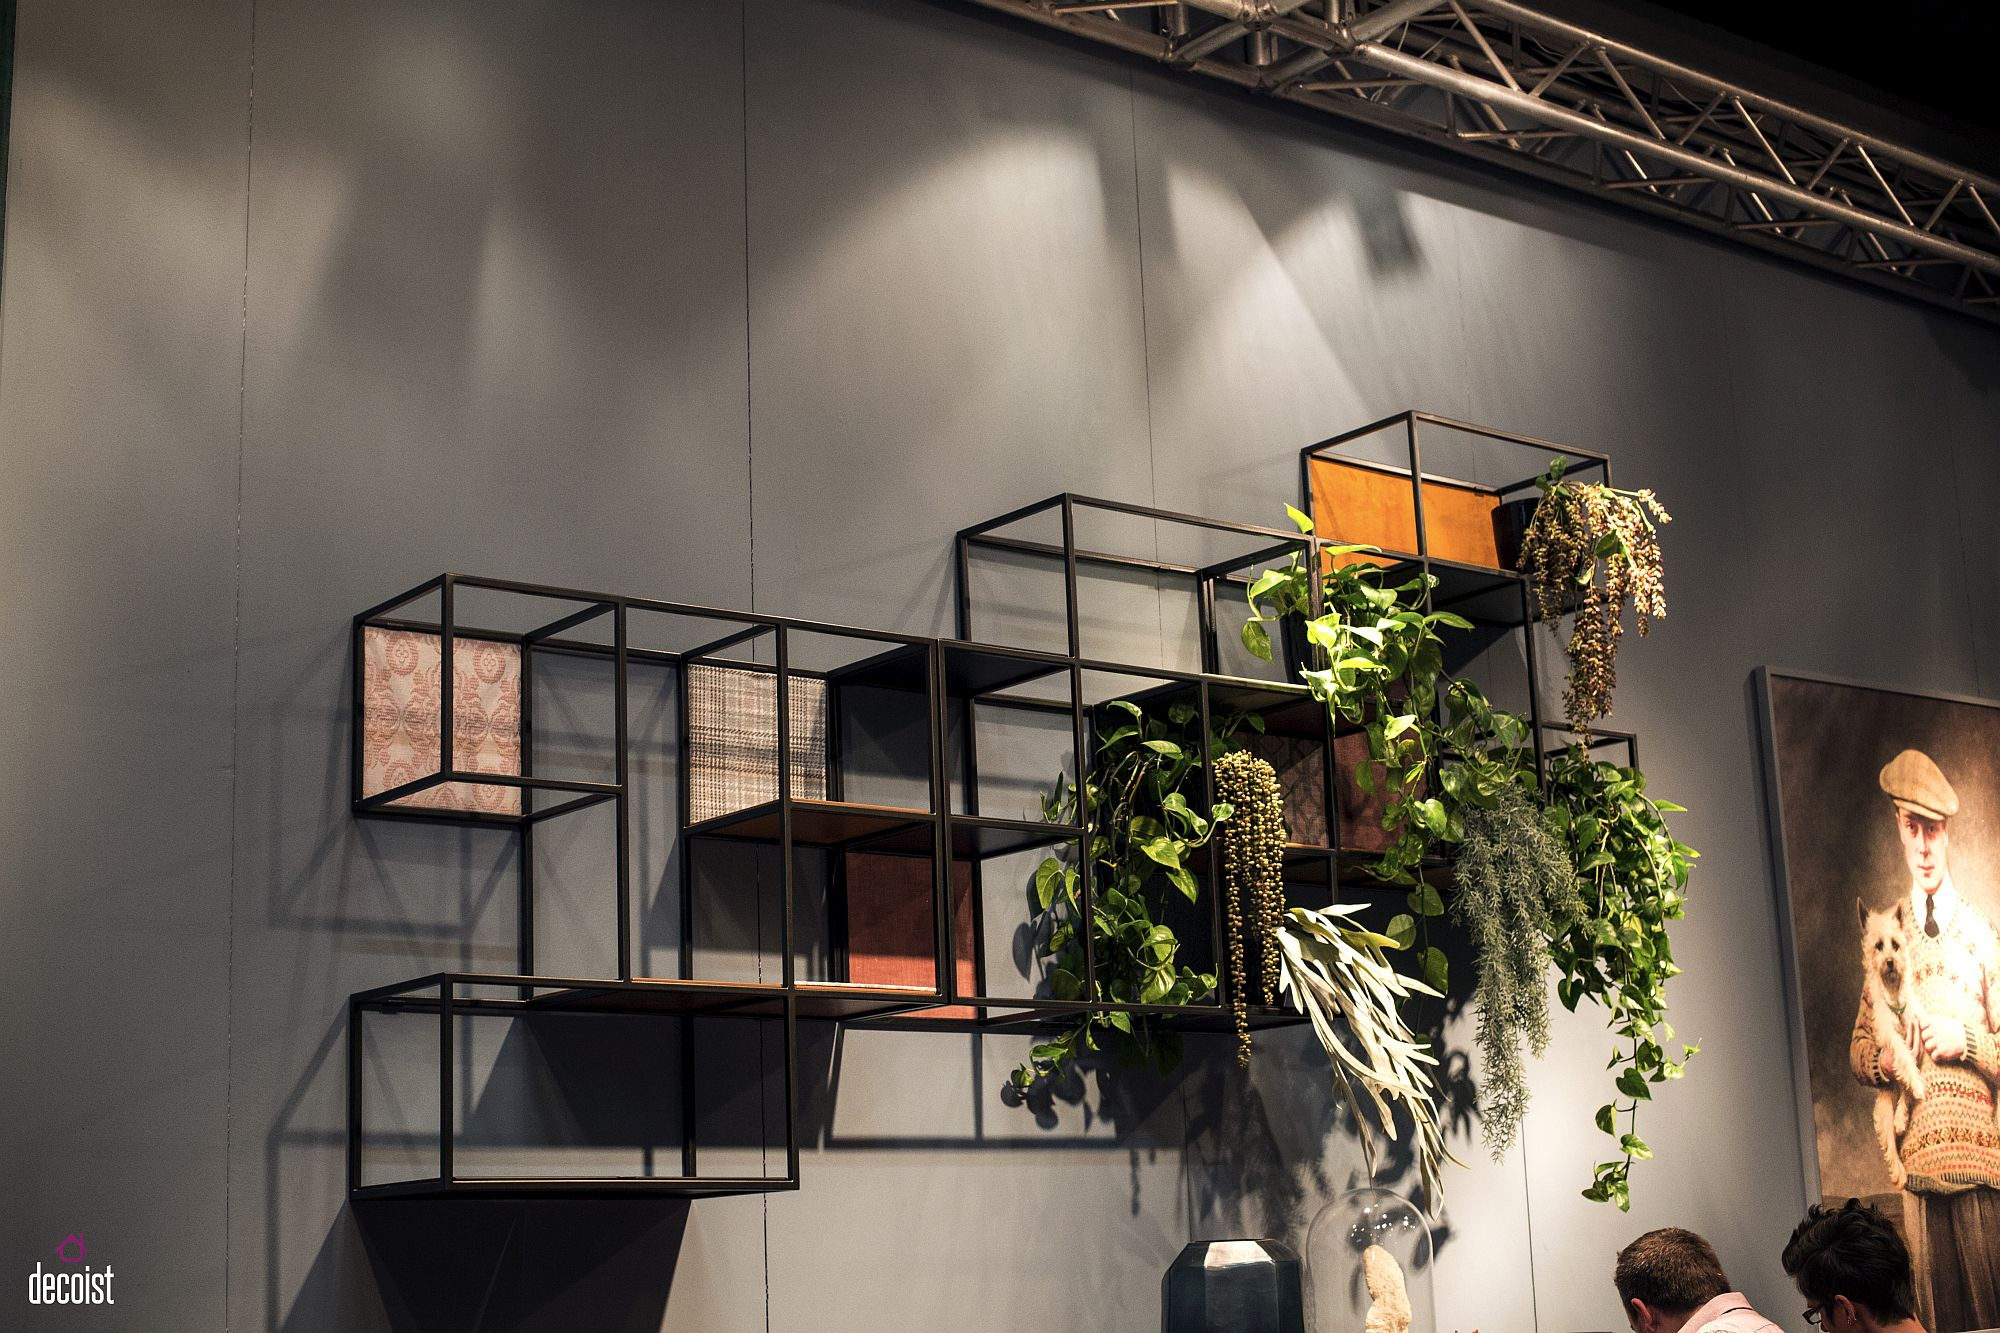 Dramatic composition of modular shelves can be repeated to create additional display space